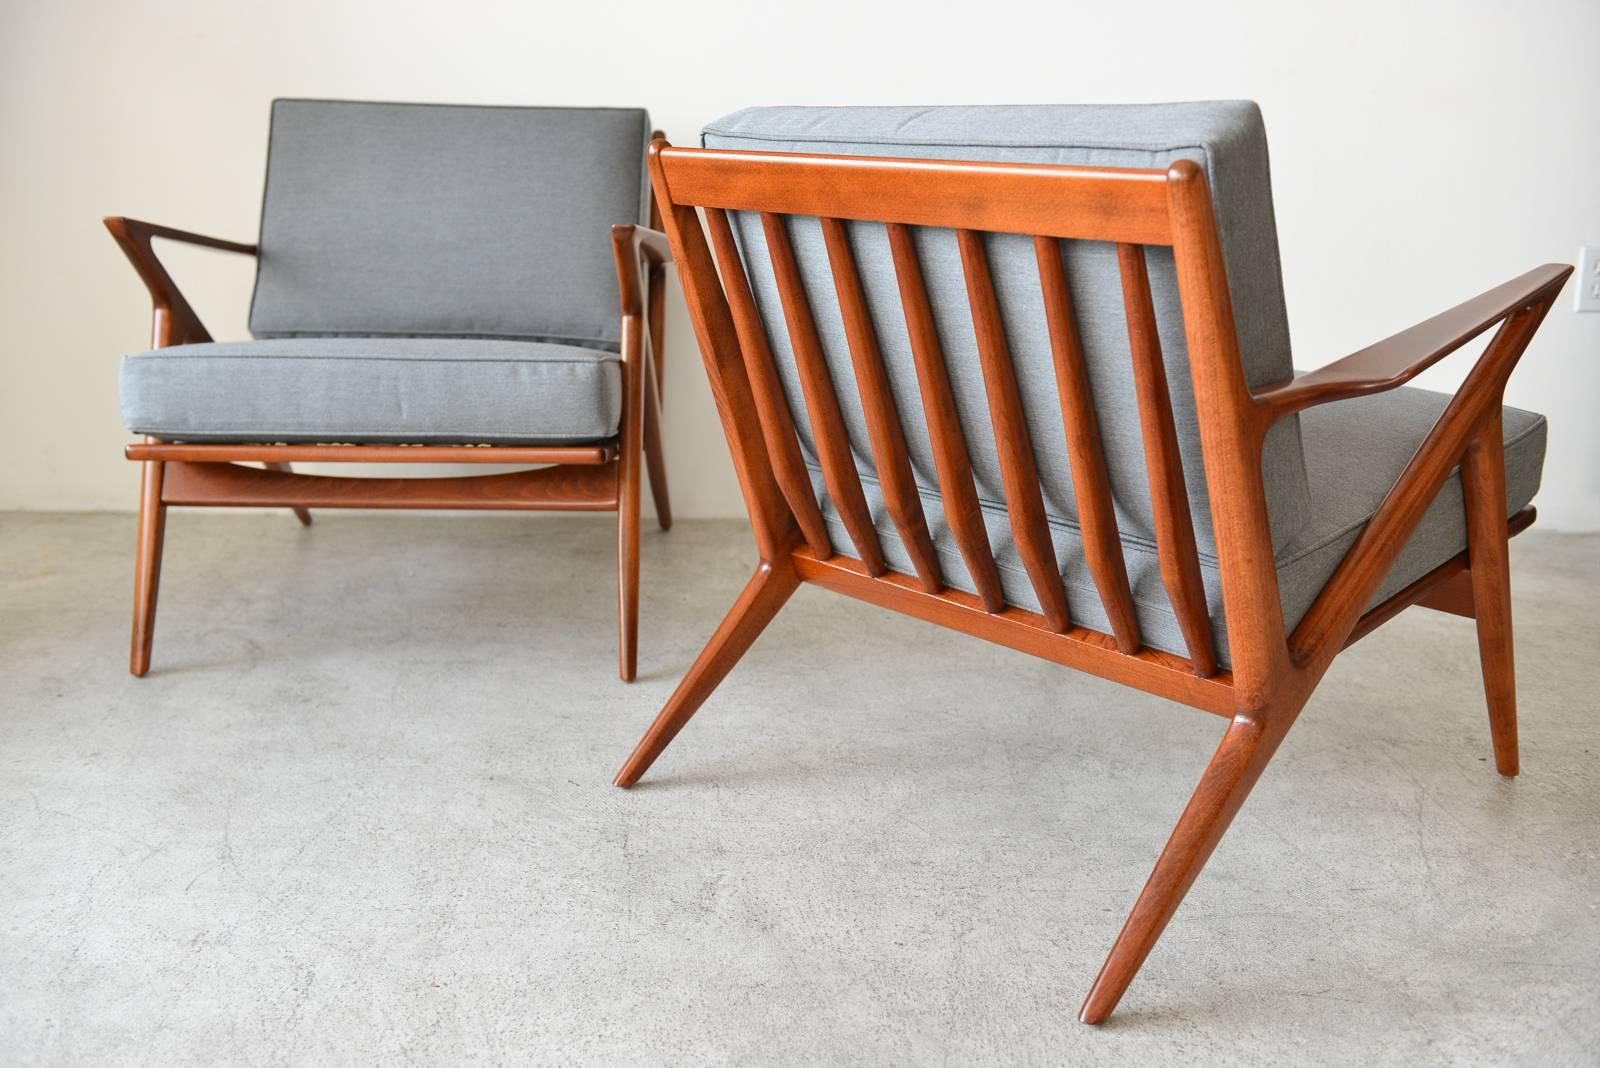 Mid Century Modern Pair Of Original Poul Jensen U0027Zu0027 Chairs By Selig,